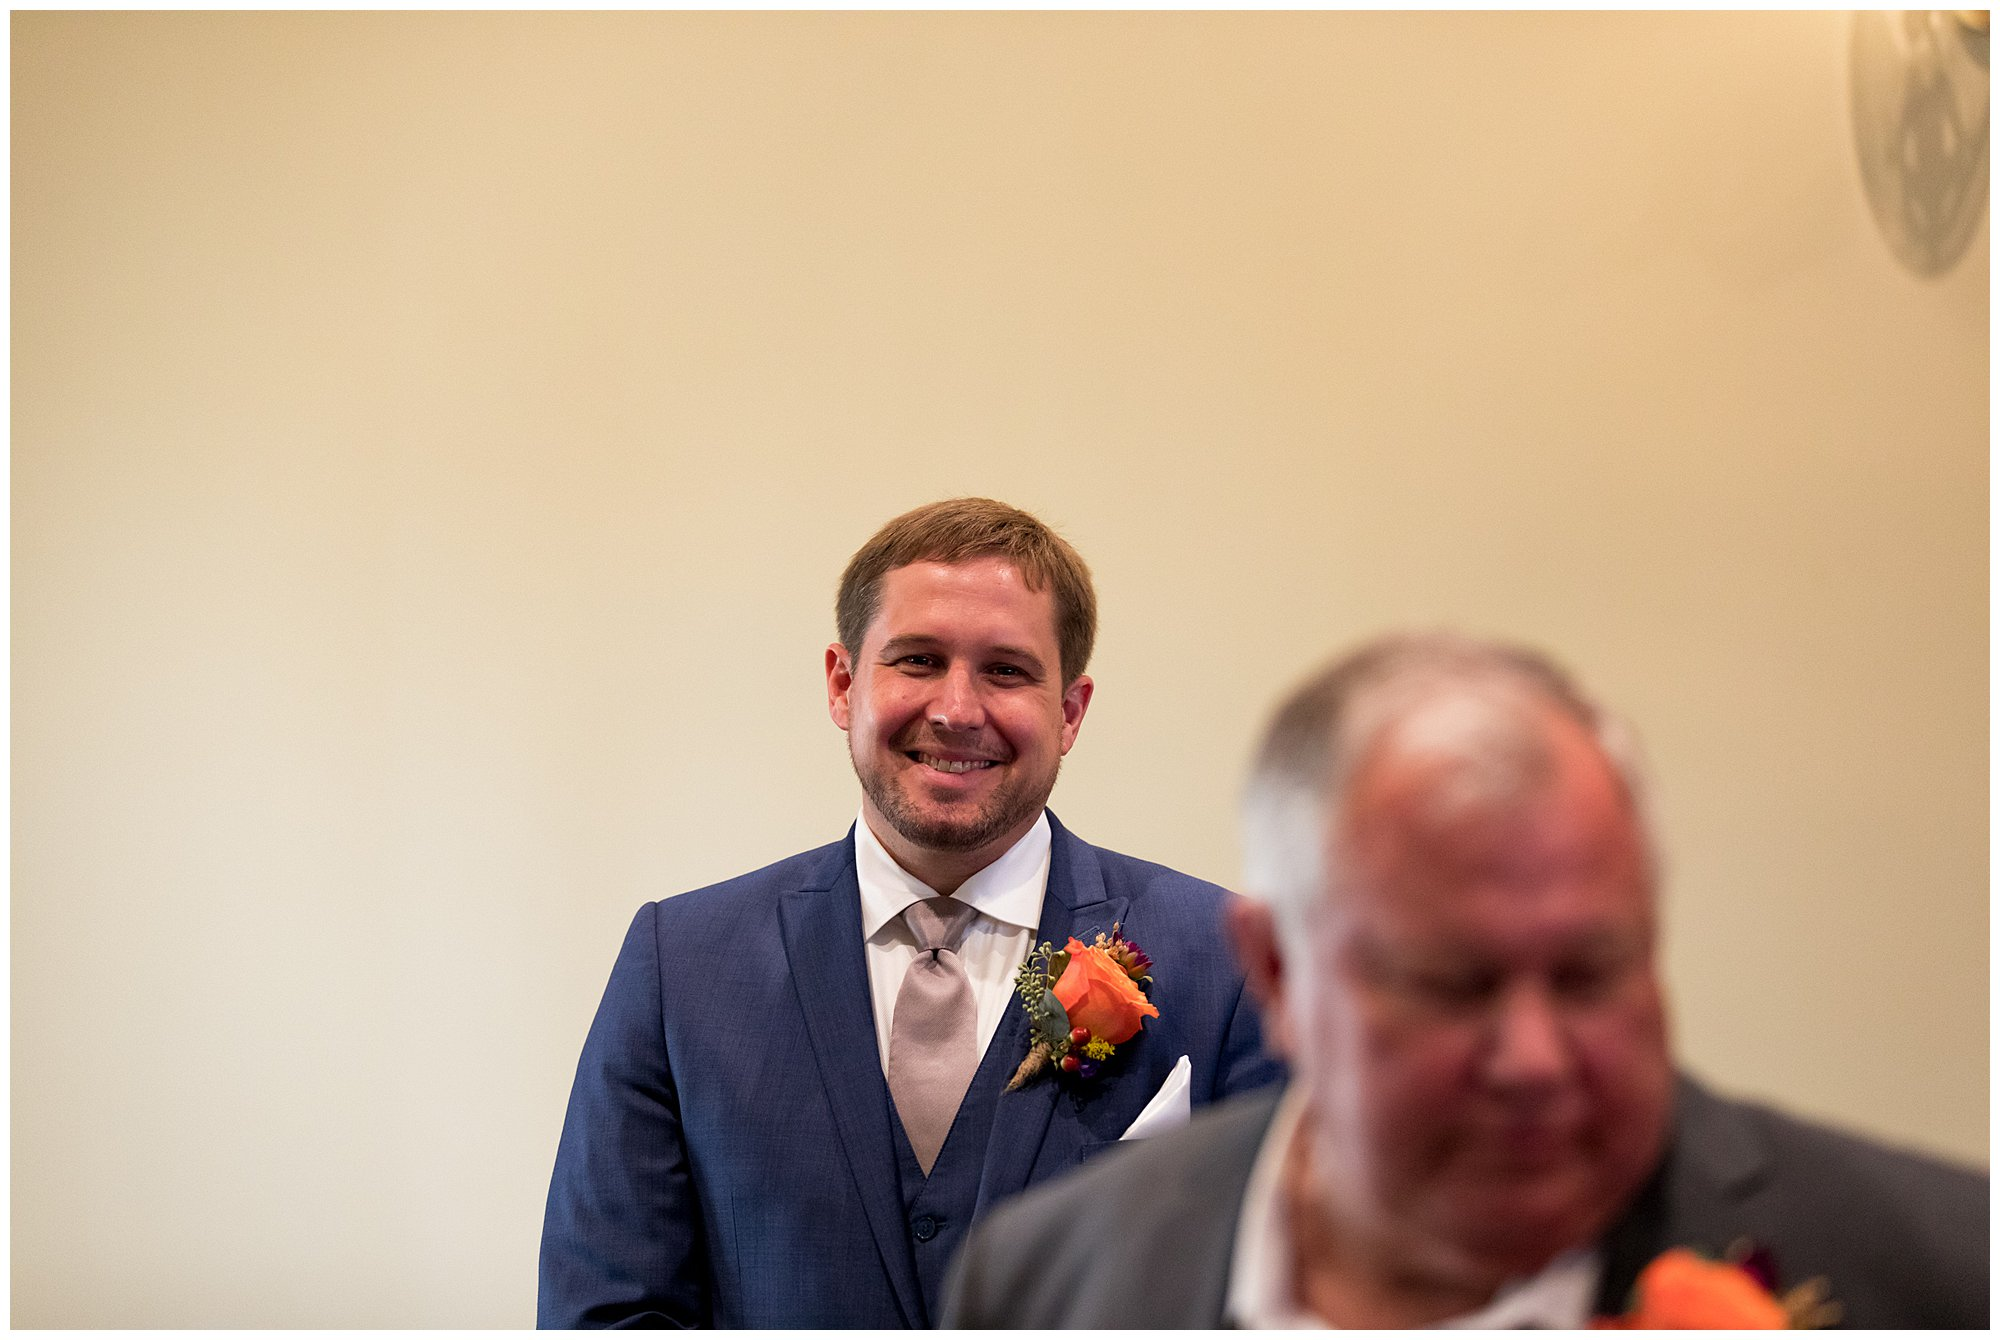 groom awaits bride's walk down aisle in Parkview Ballroom at Eagles Theatre